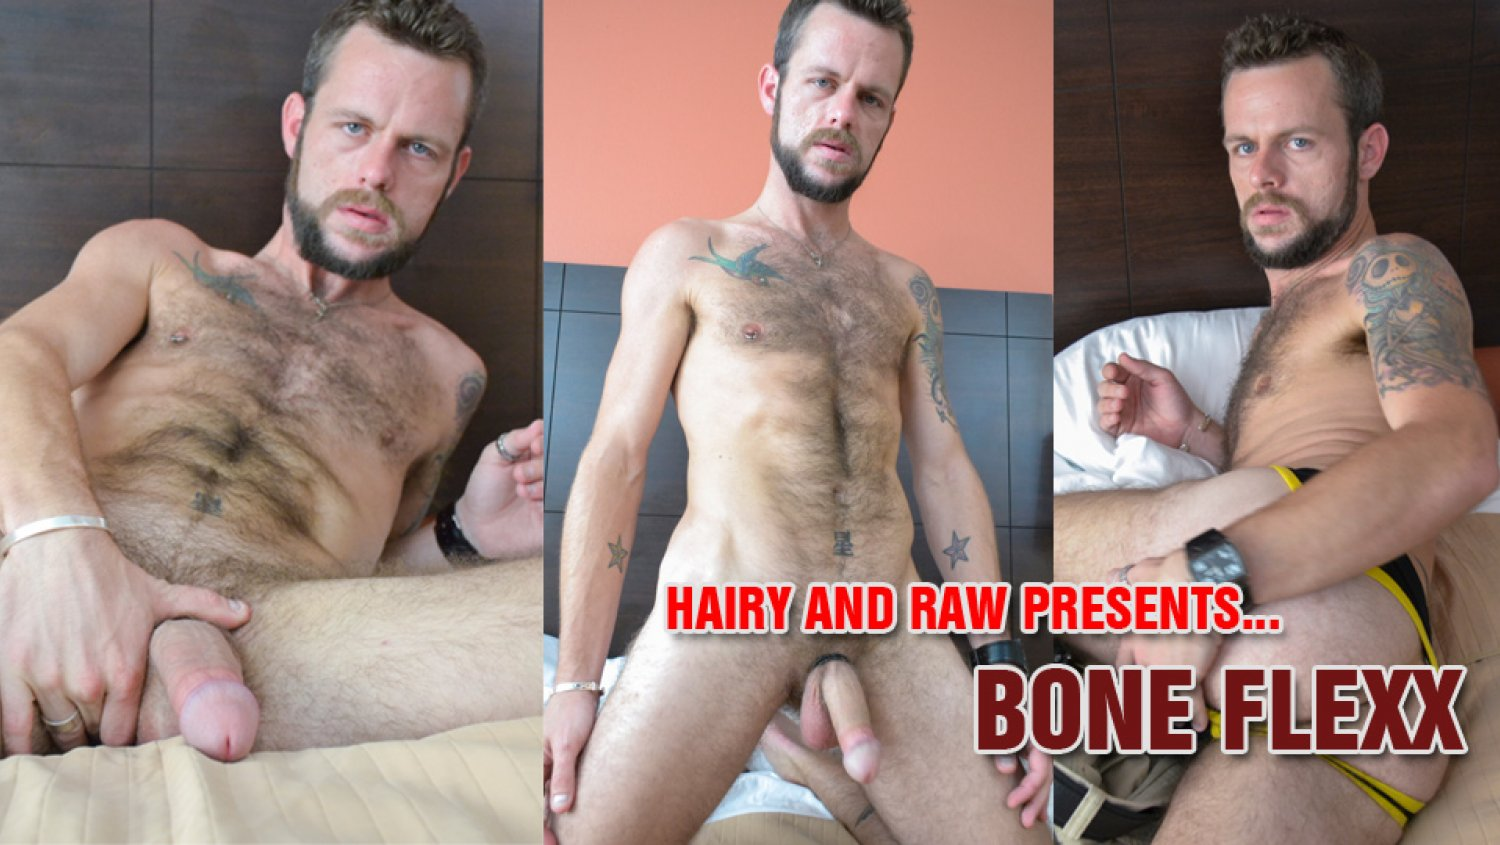 Bone Flexx -- Video - HairyAndRaw fuck picture frst time pakistani